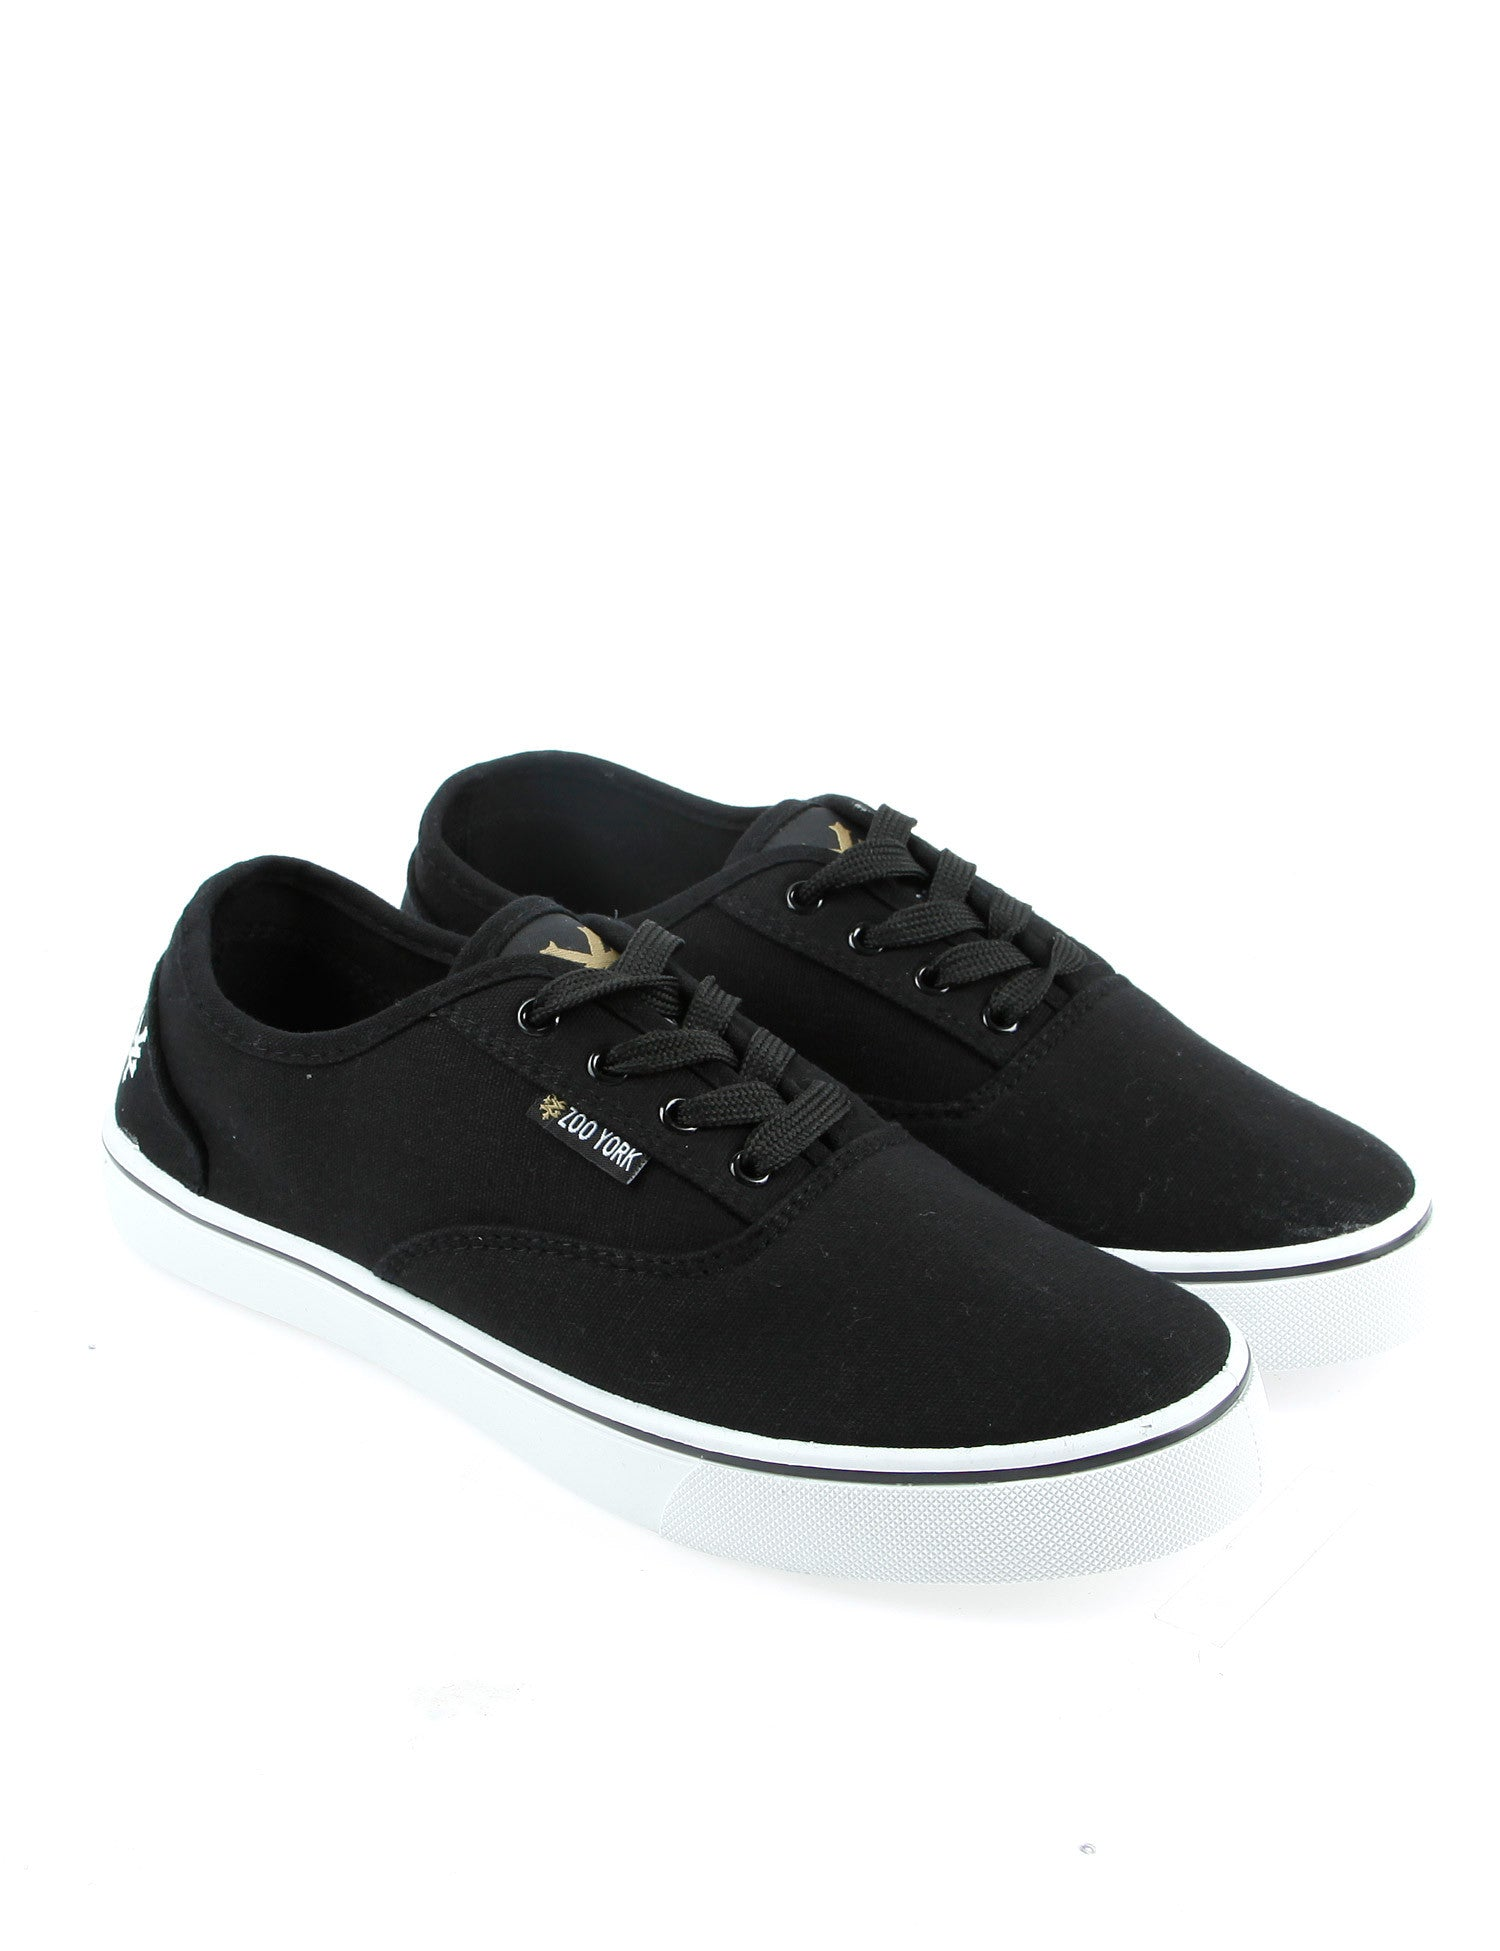 Zoo York KENNEDY Sneaker ZYFM0002 Black